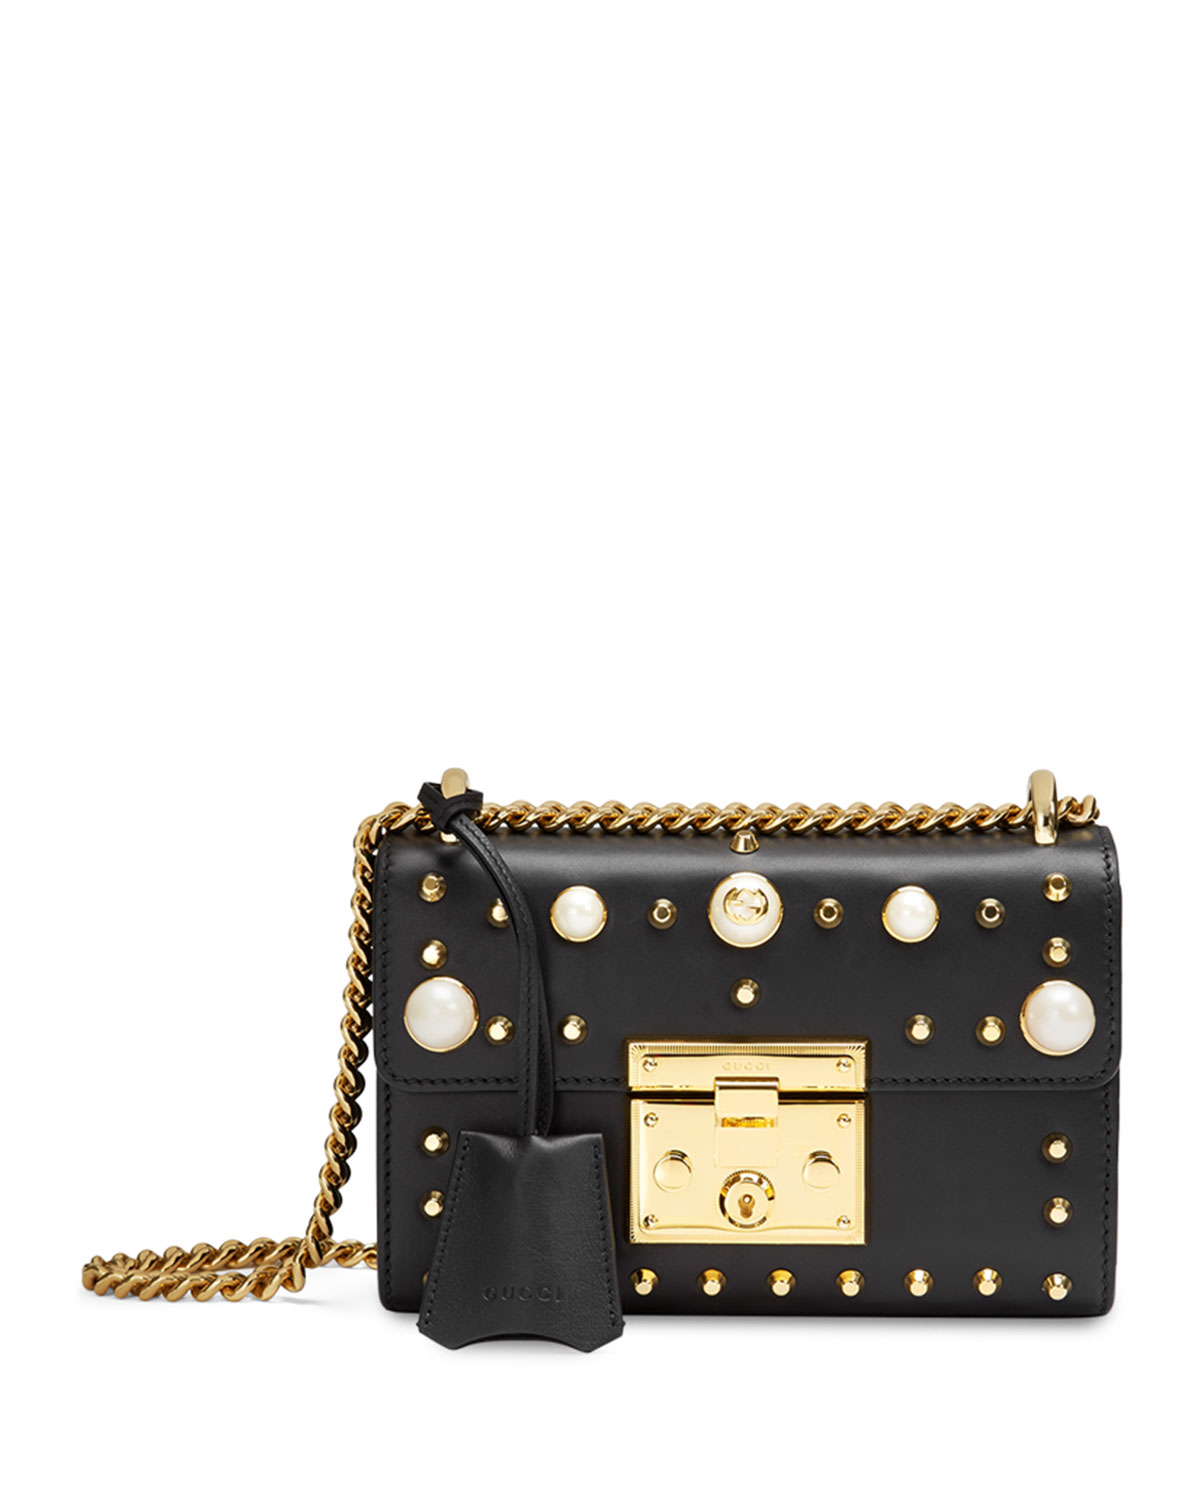 a3bf80e08b593f Gucci Padlock Small Studded Leather Shoulder Bag, Black/Multi ...